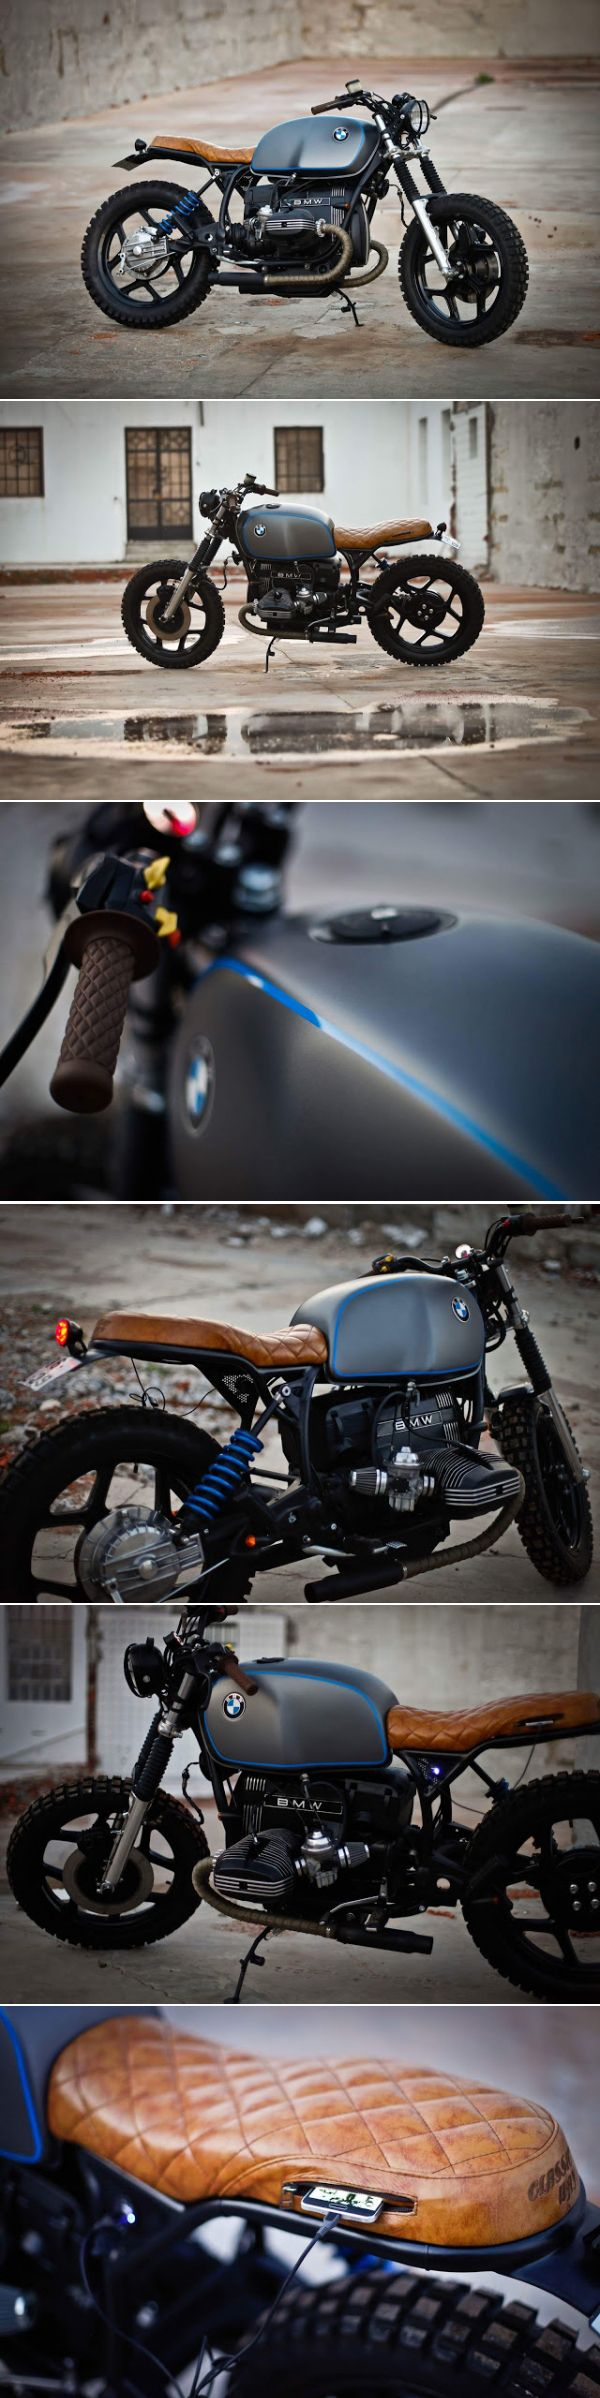 BMW R80 RT by Diogo Oliveria of Classic Way Garage